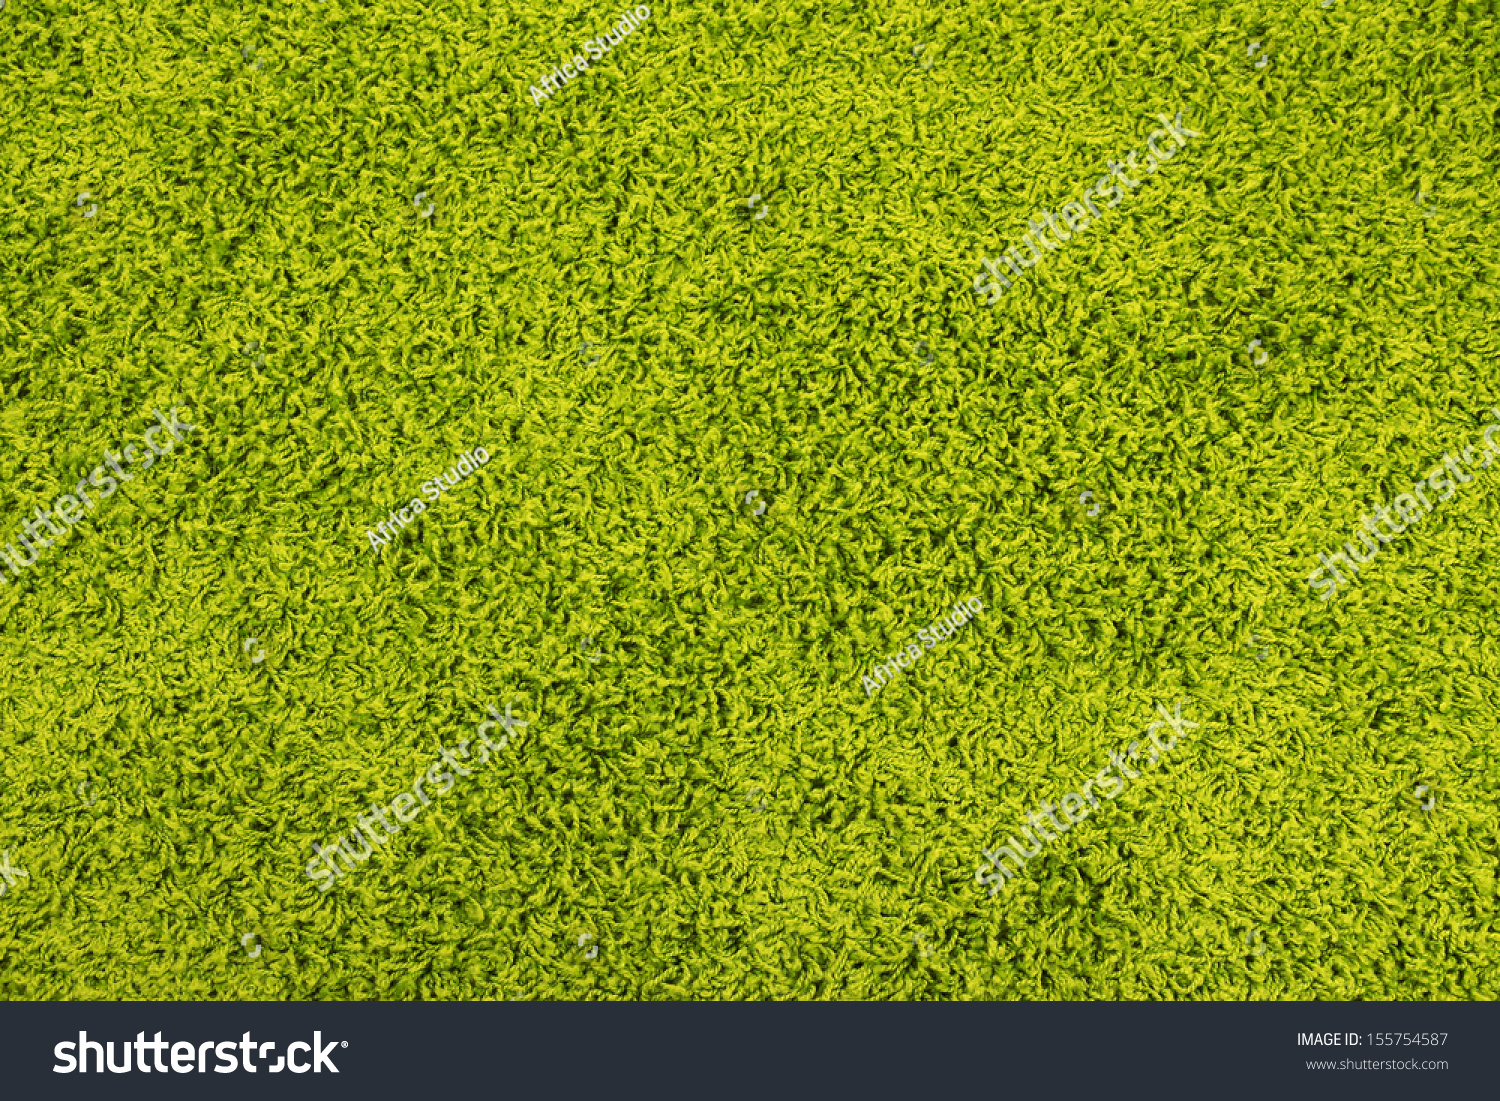 Green carpet texture stock photo 155754587 shutterstock for Light green carpet texture